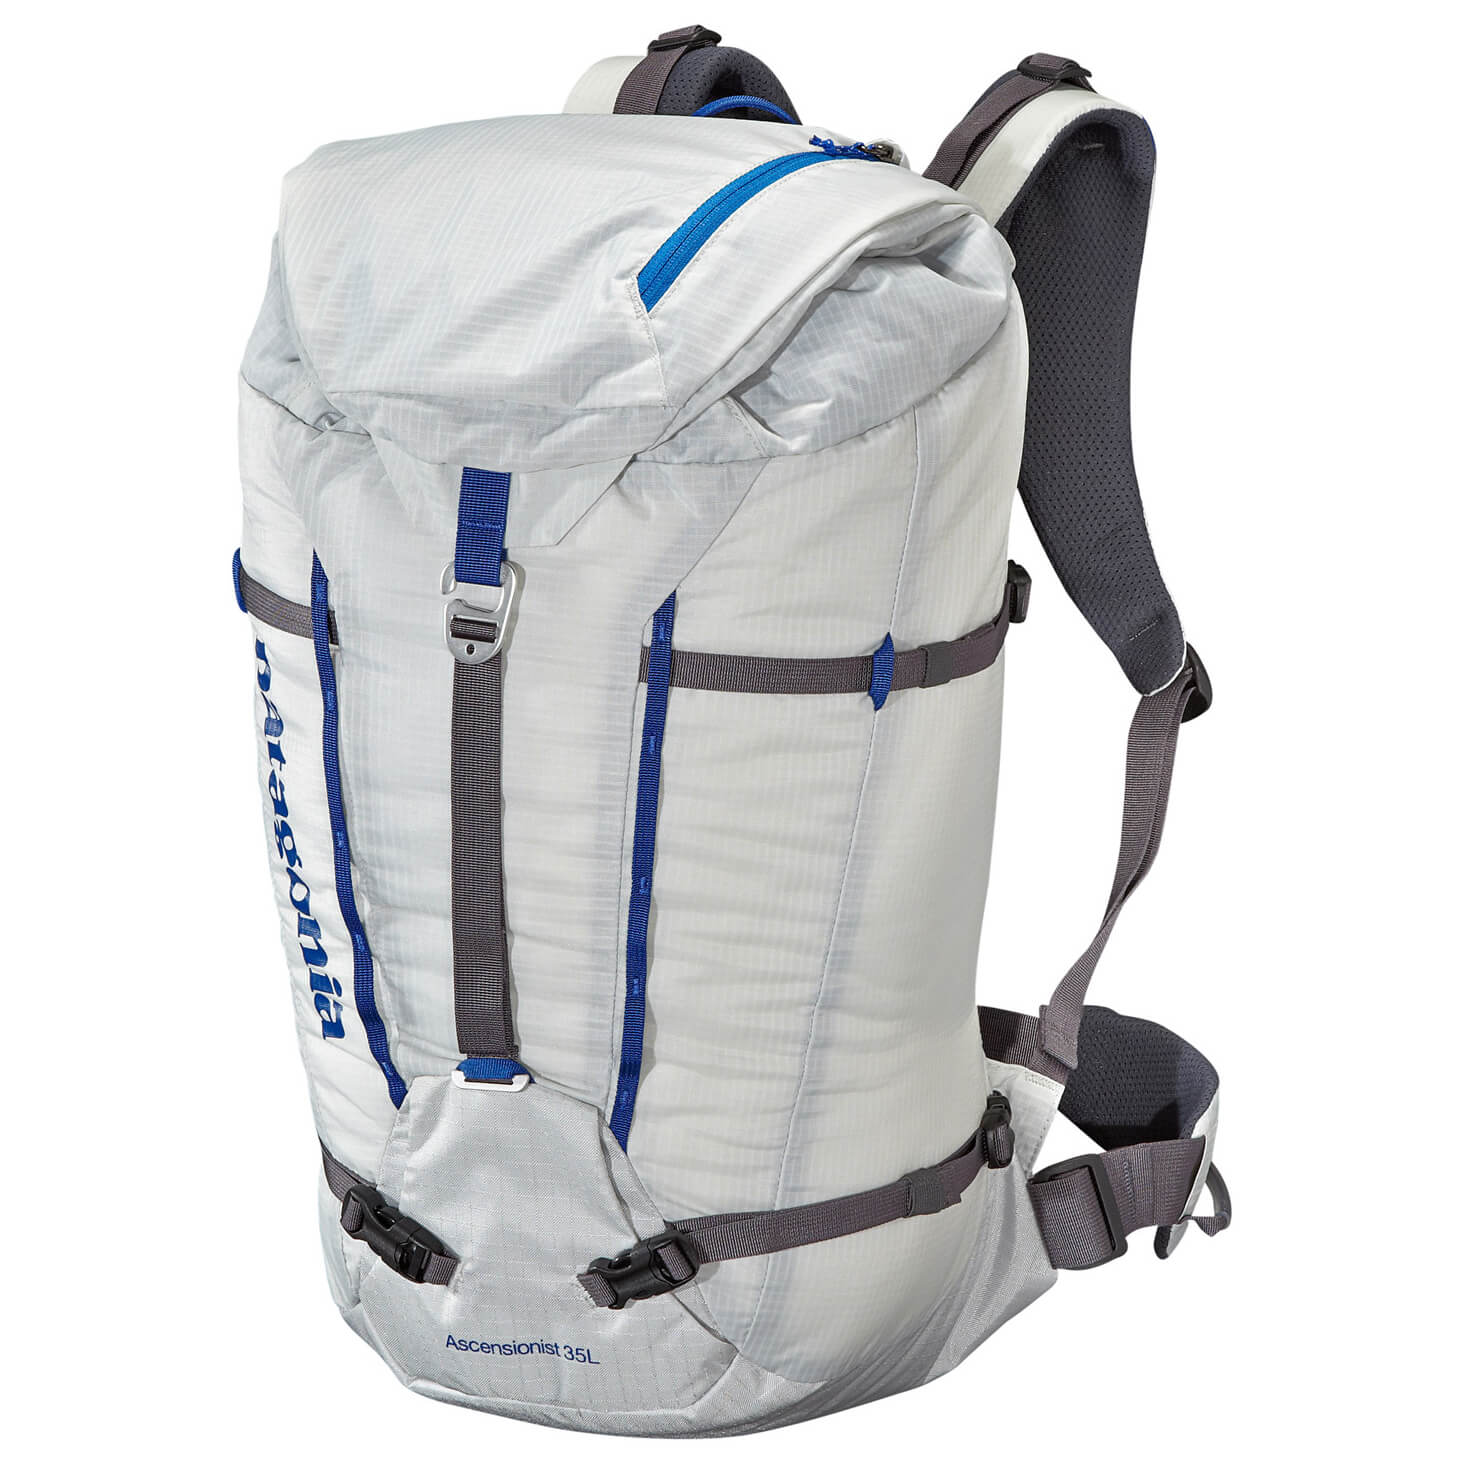 Patagonia - Ascensionist Pack 35L